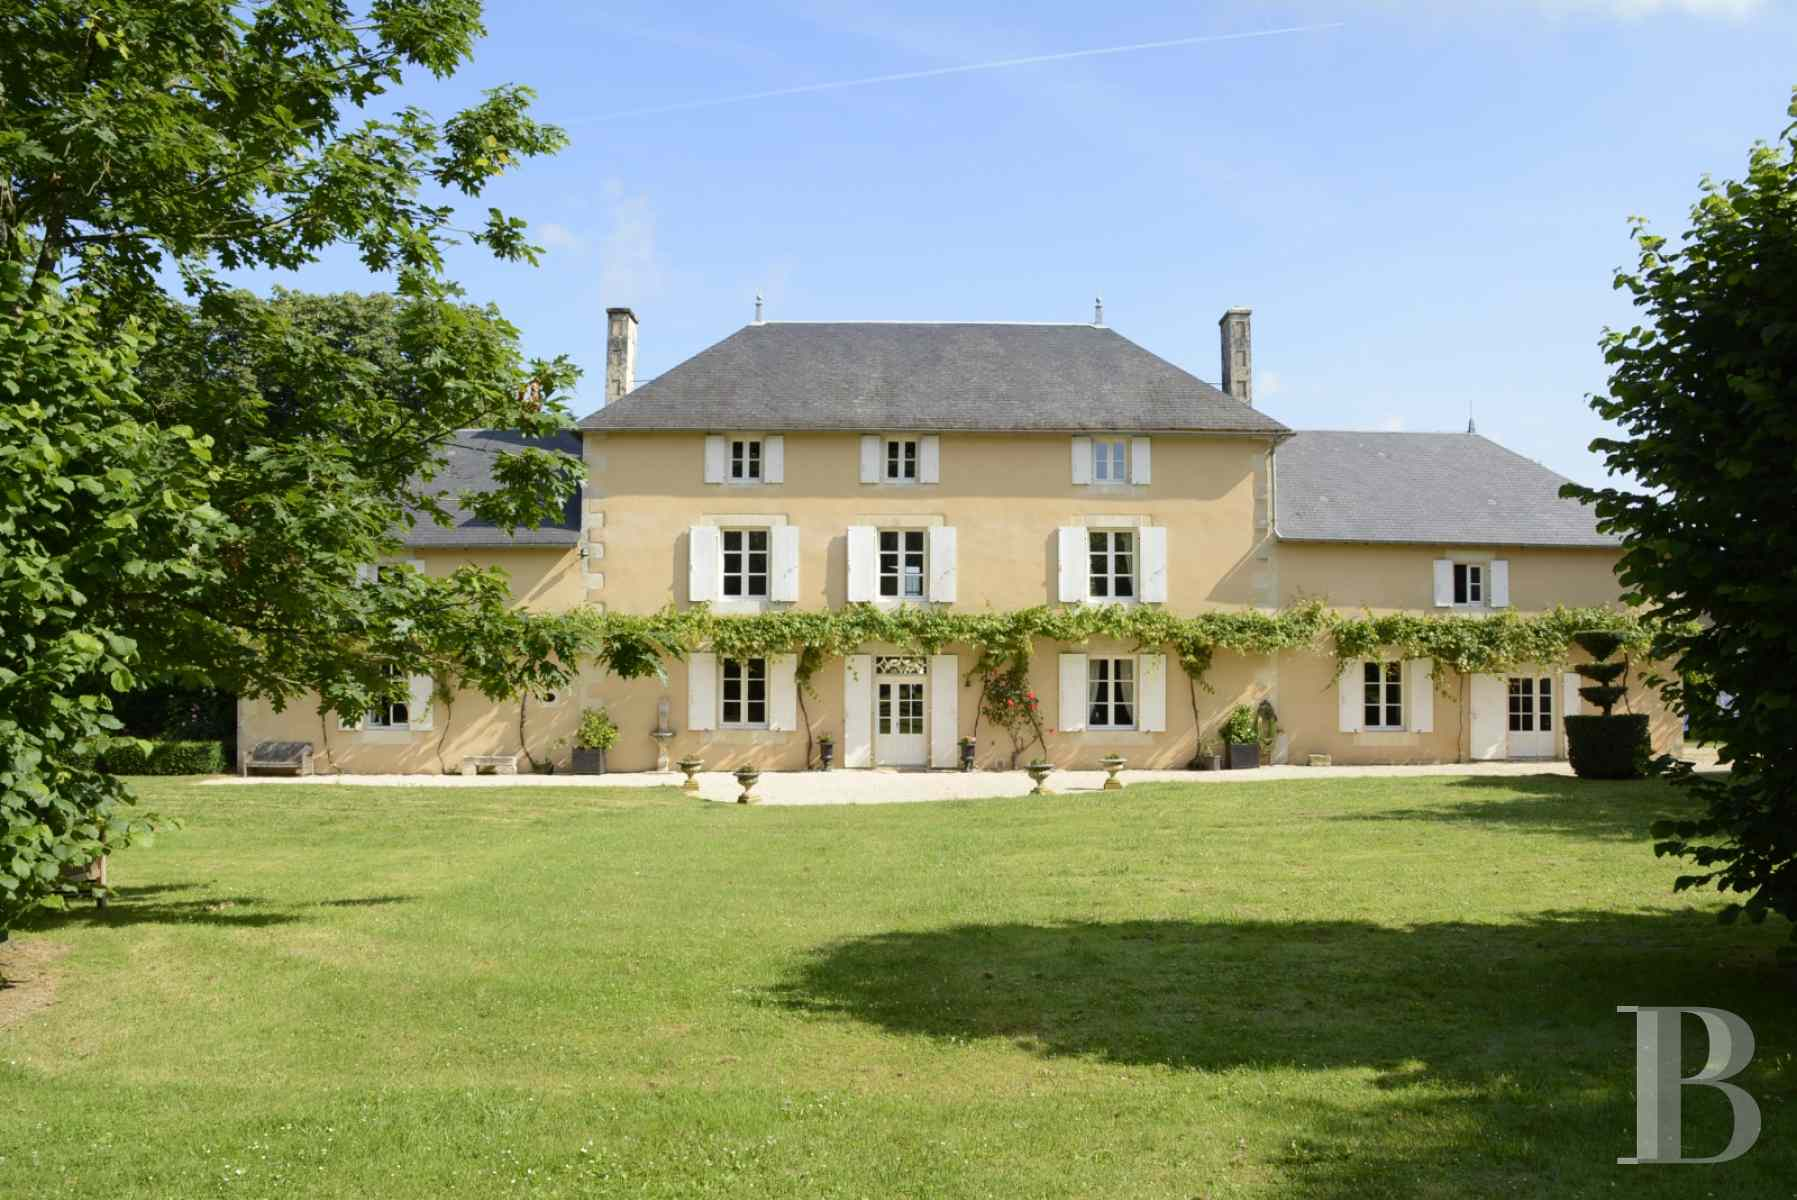 character properties France poitou charentes luxurious home - 1 zoom